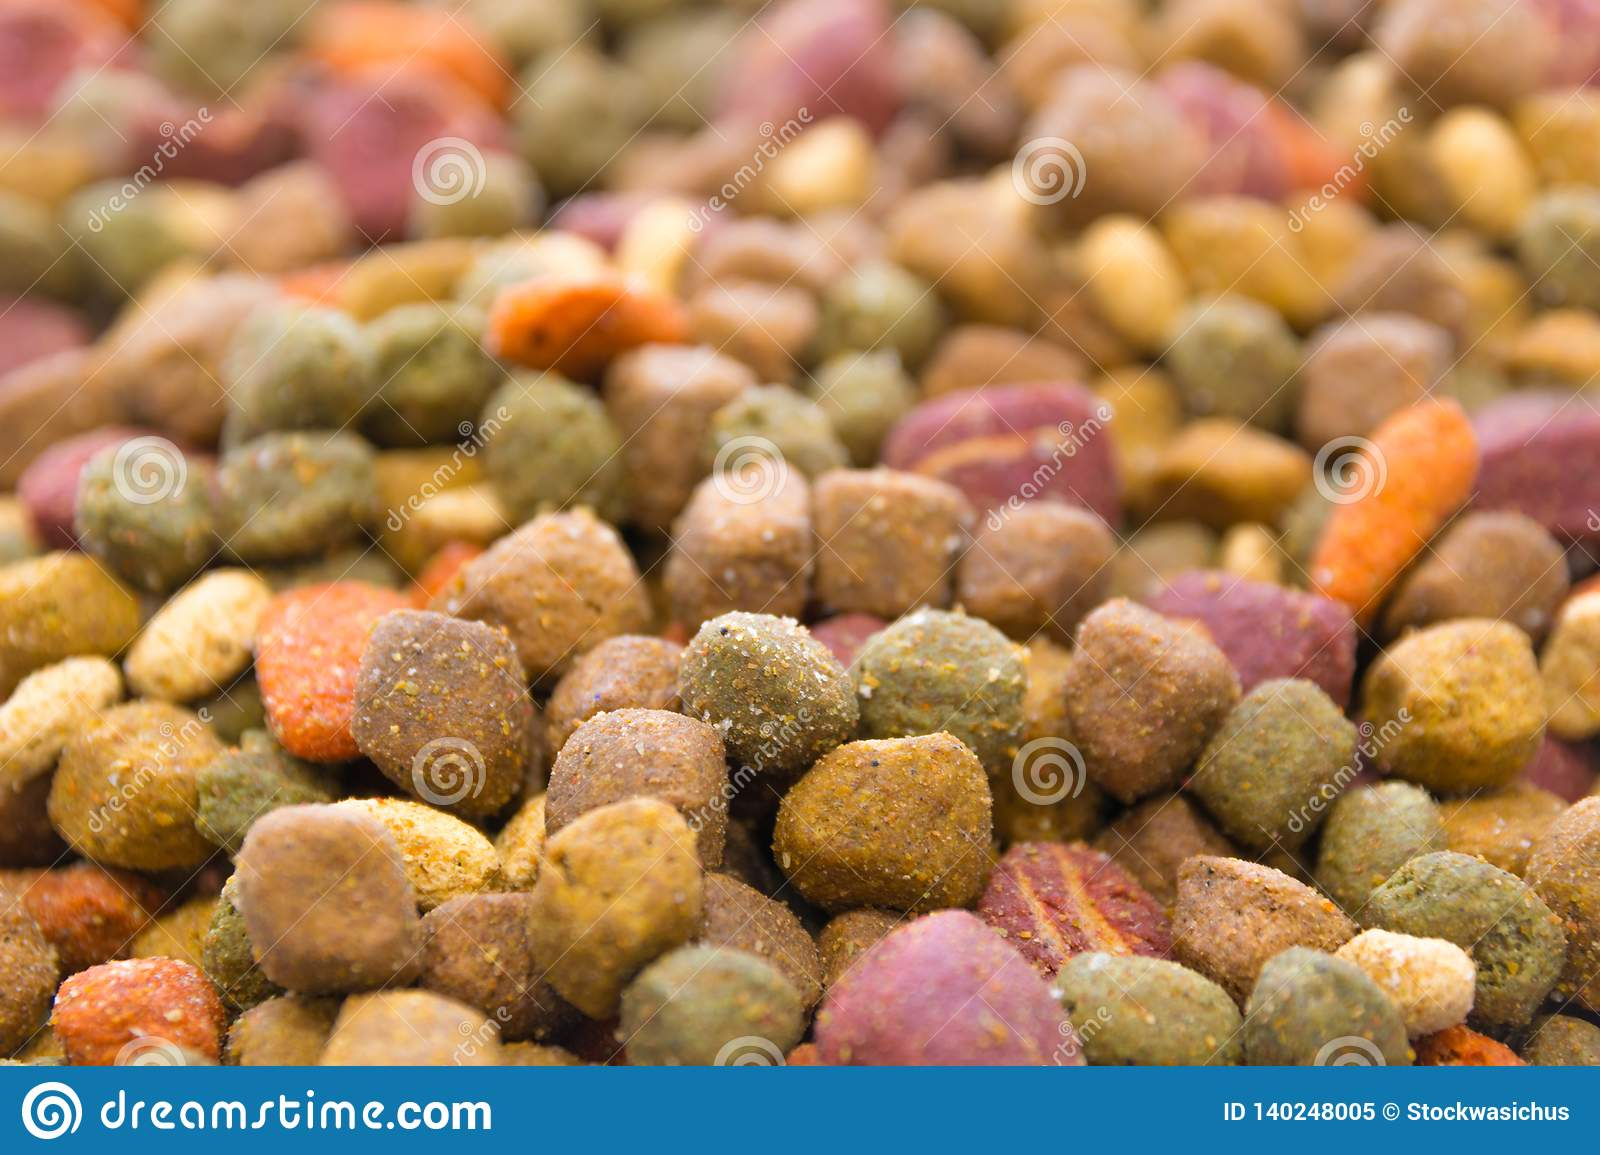 Dried dog food background. Colorful dog treats close up